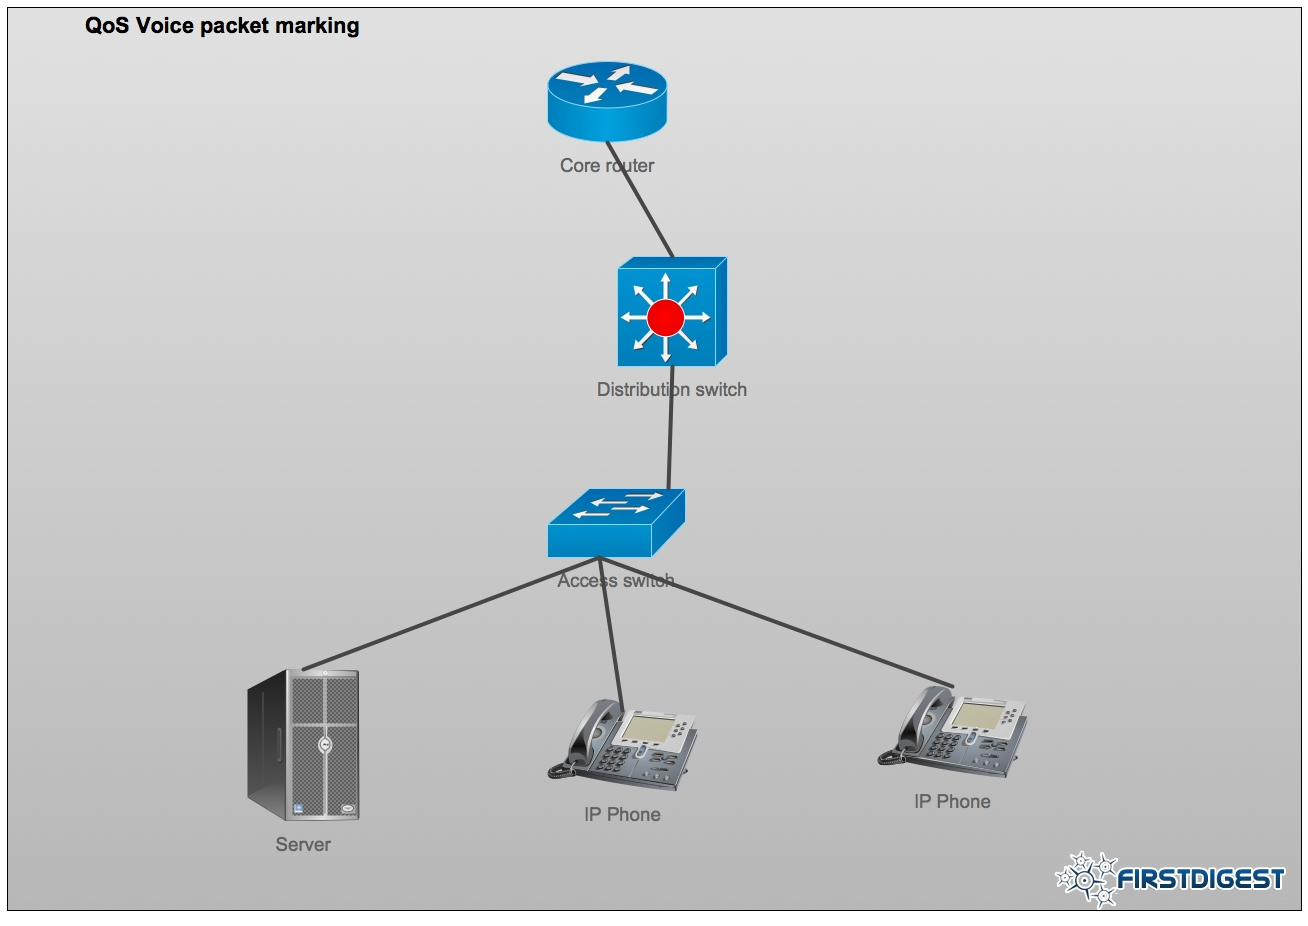 Cisco: Mark voice packets at the network edge